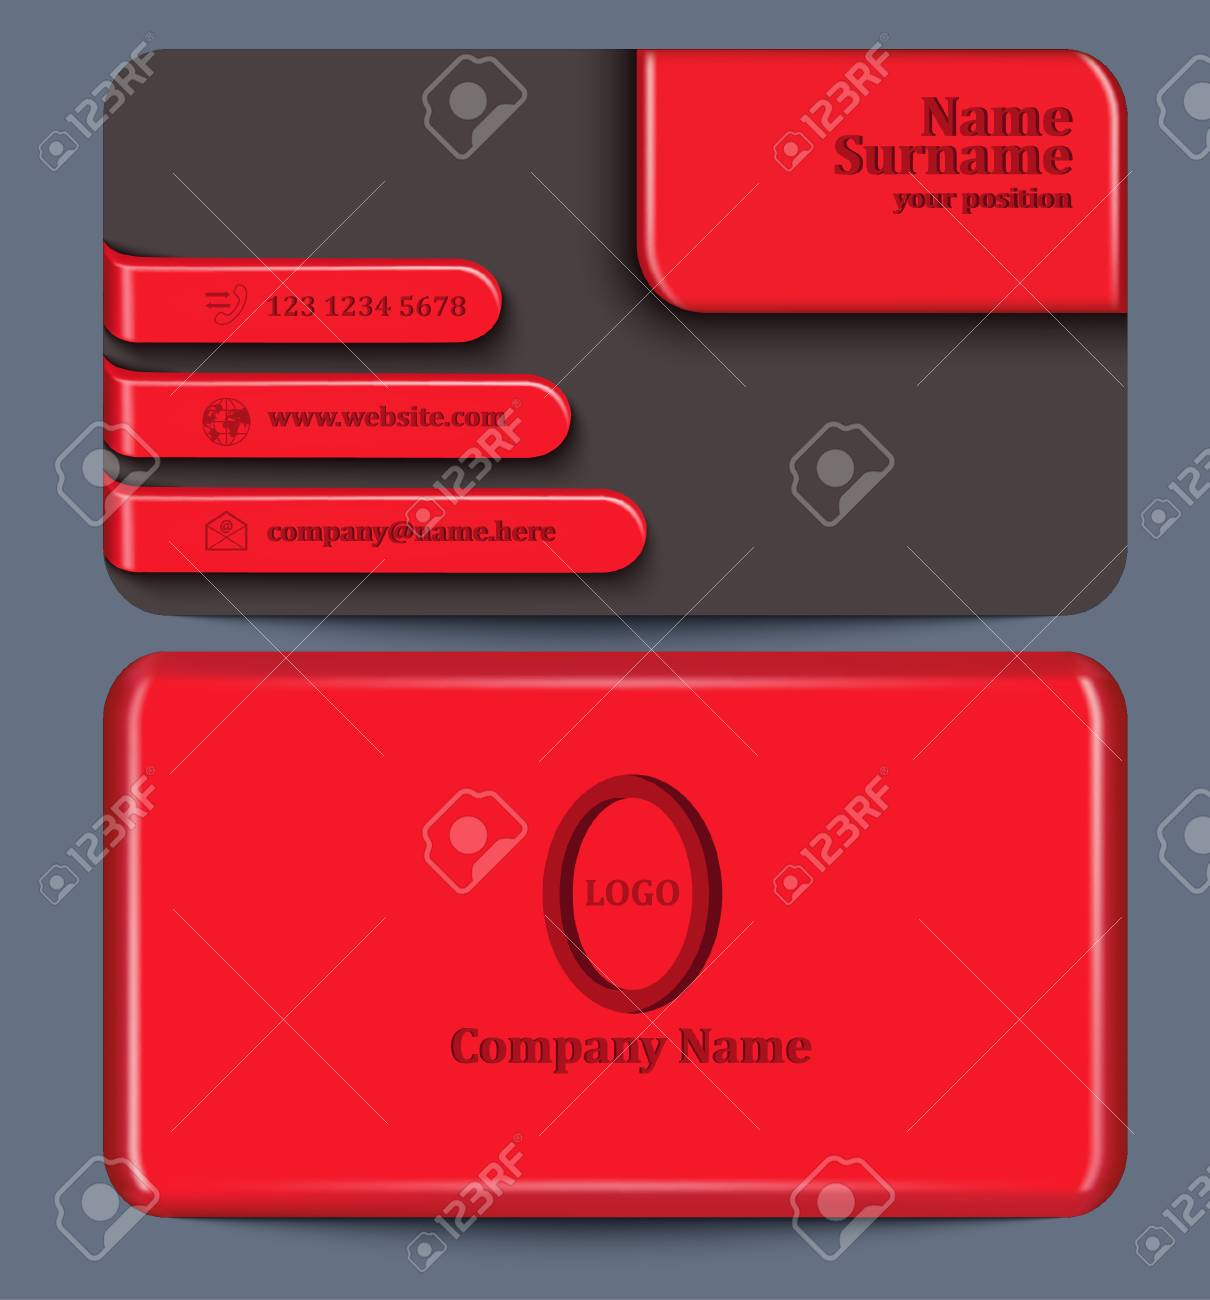 Business card with red plastic elements template of visit card business card with red plastic elements template of visit card with one plastic side and colourmoves